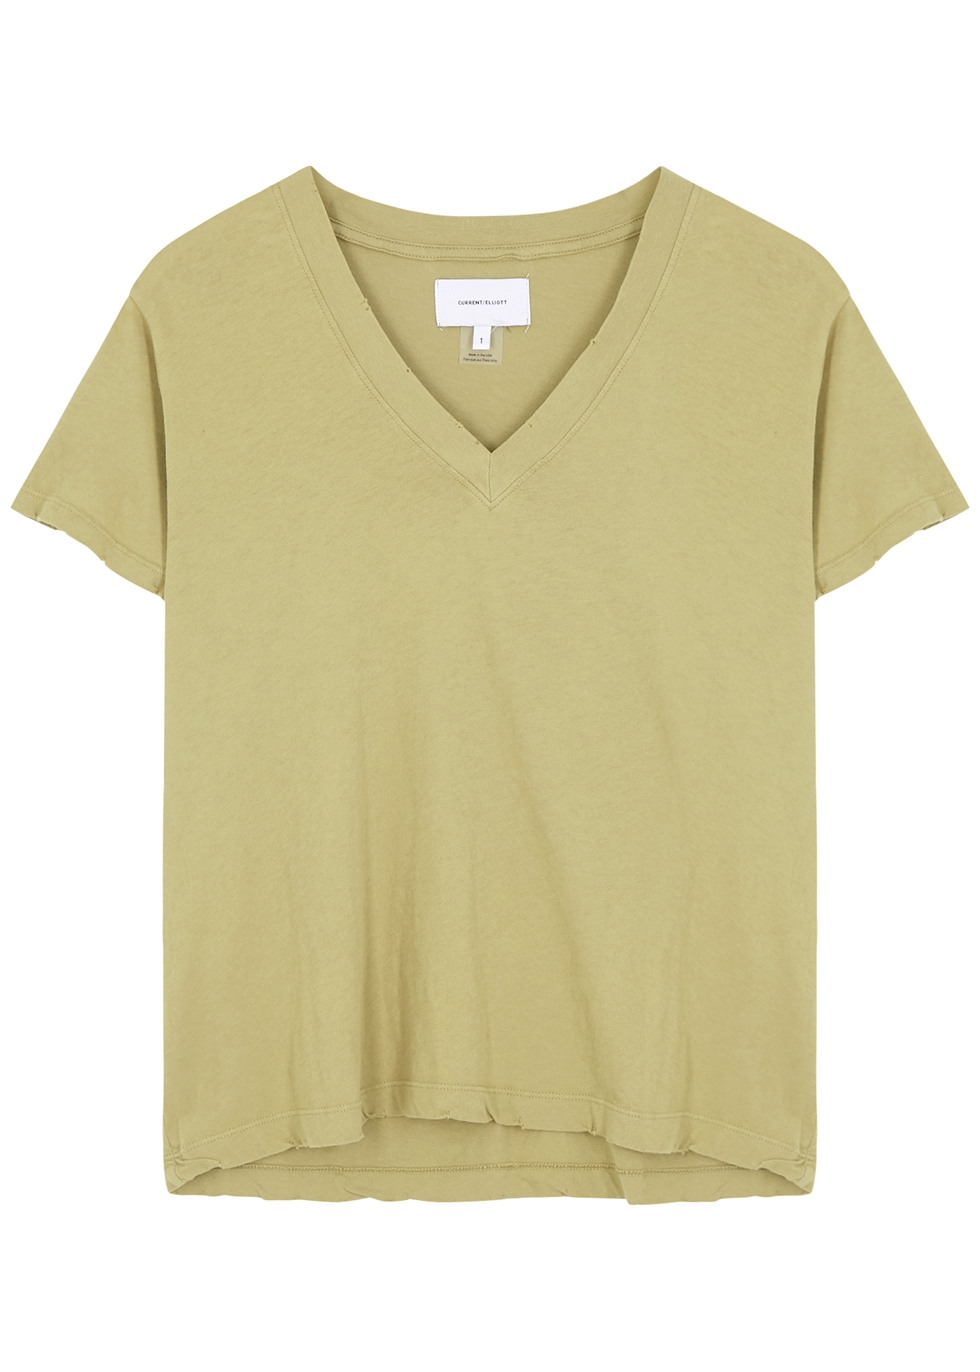 Olive distressed cotton T-shirt